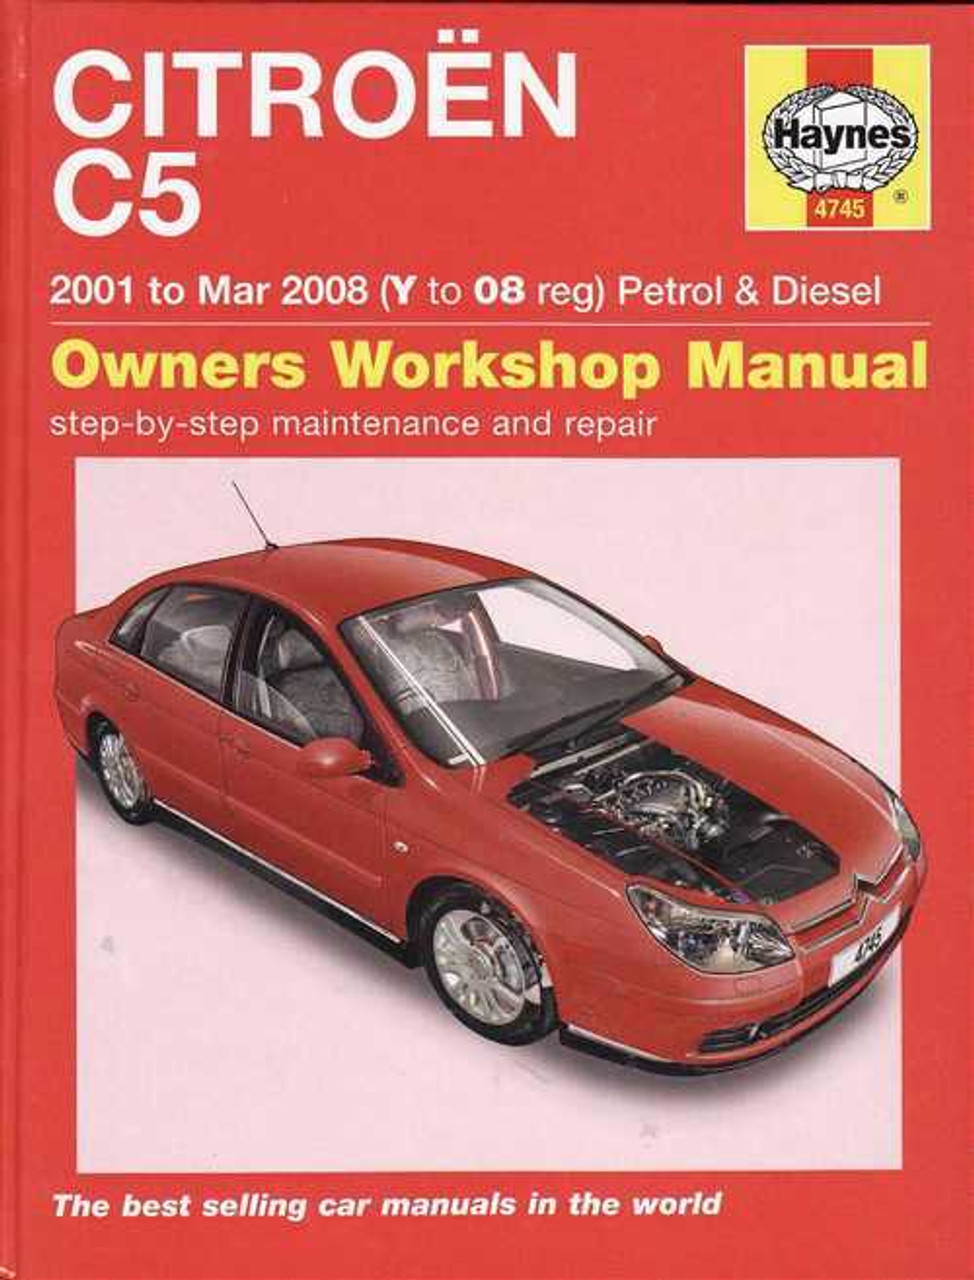 citroen c5 2001 2008 petrol amp diesel workshop manual rh automotobookshop com au repair manual citroen c5 service manual citroen c5